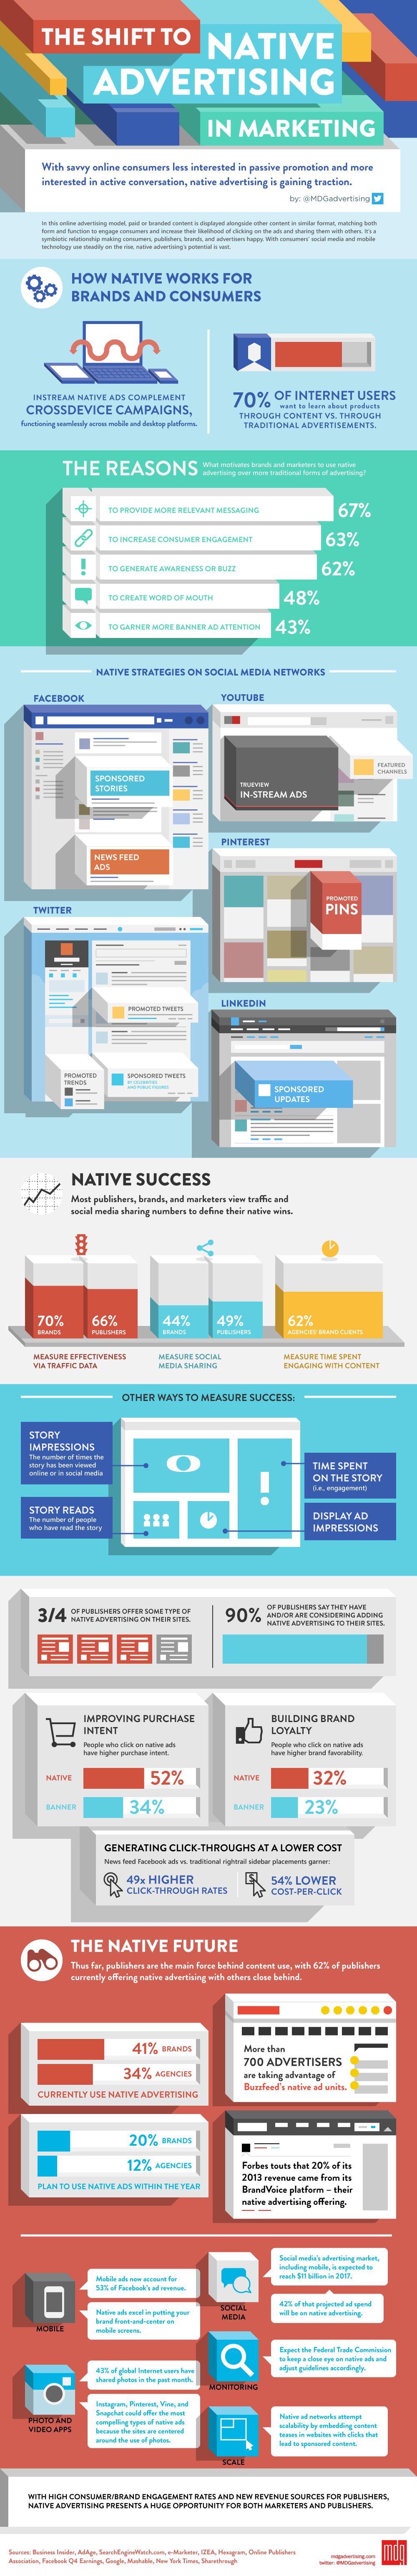 The Shift to Native Advertising in Marketing